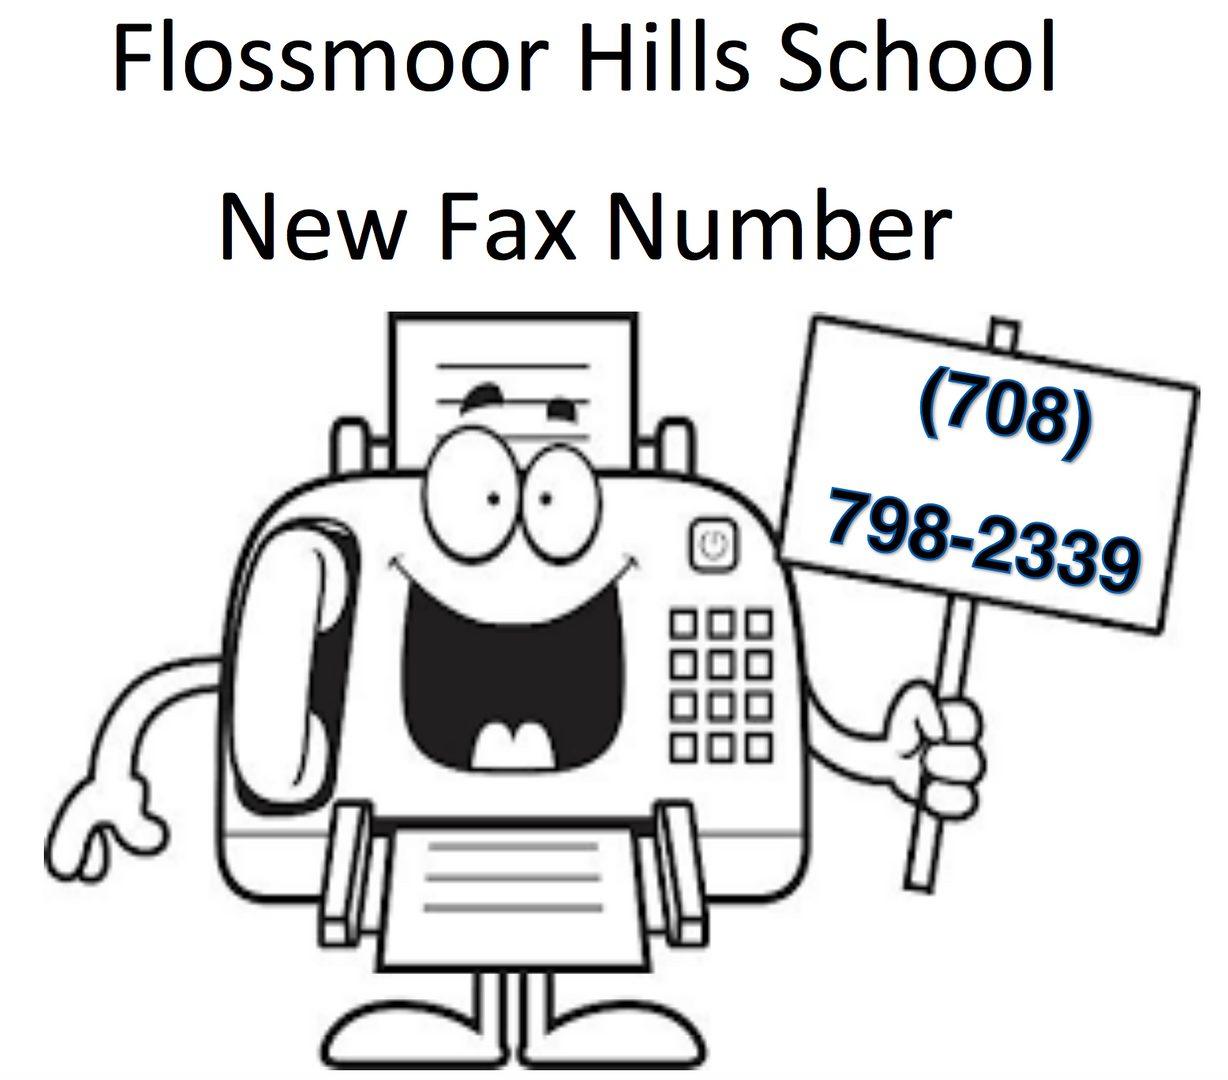 New fax number 708-798-2339